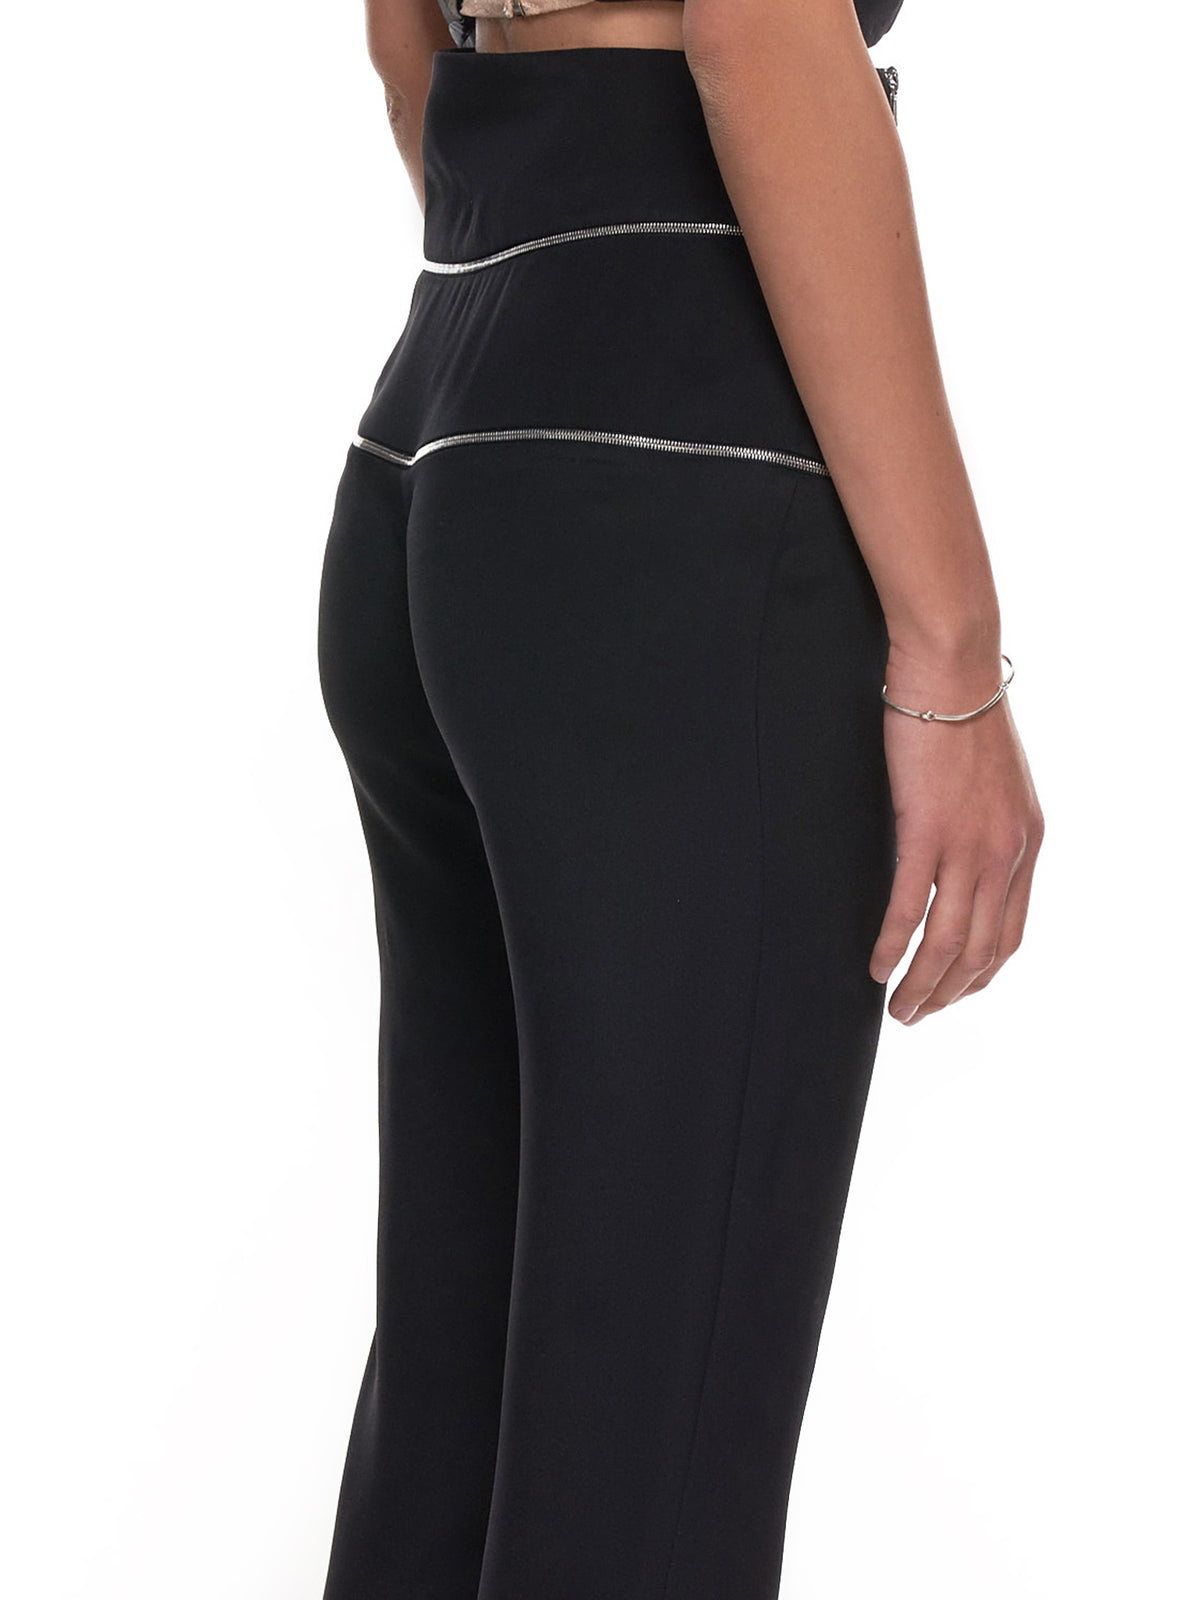 Nicolas Lecourt Mansion Pants - Hlorenzo Detail 2